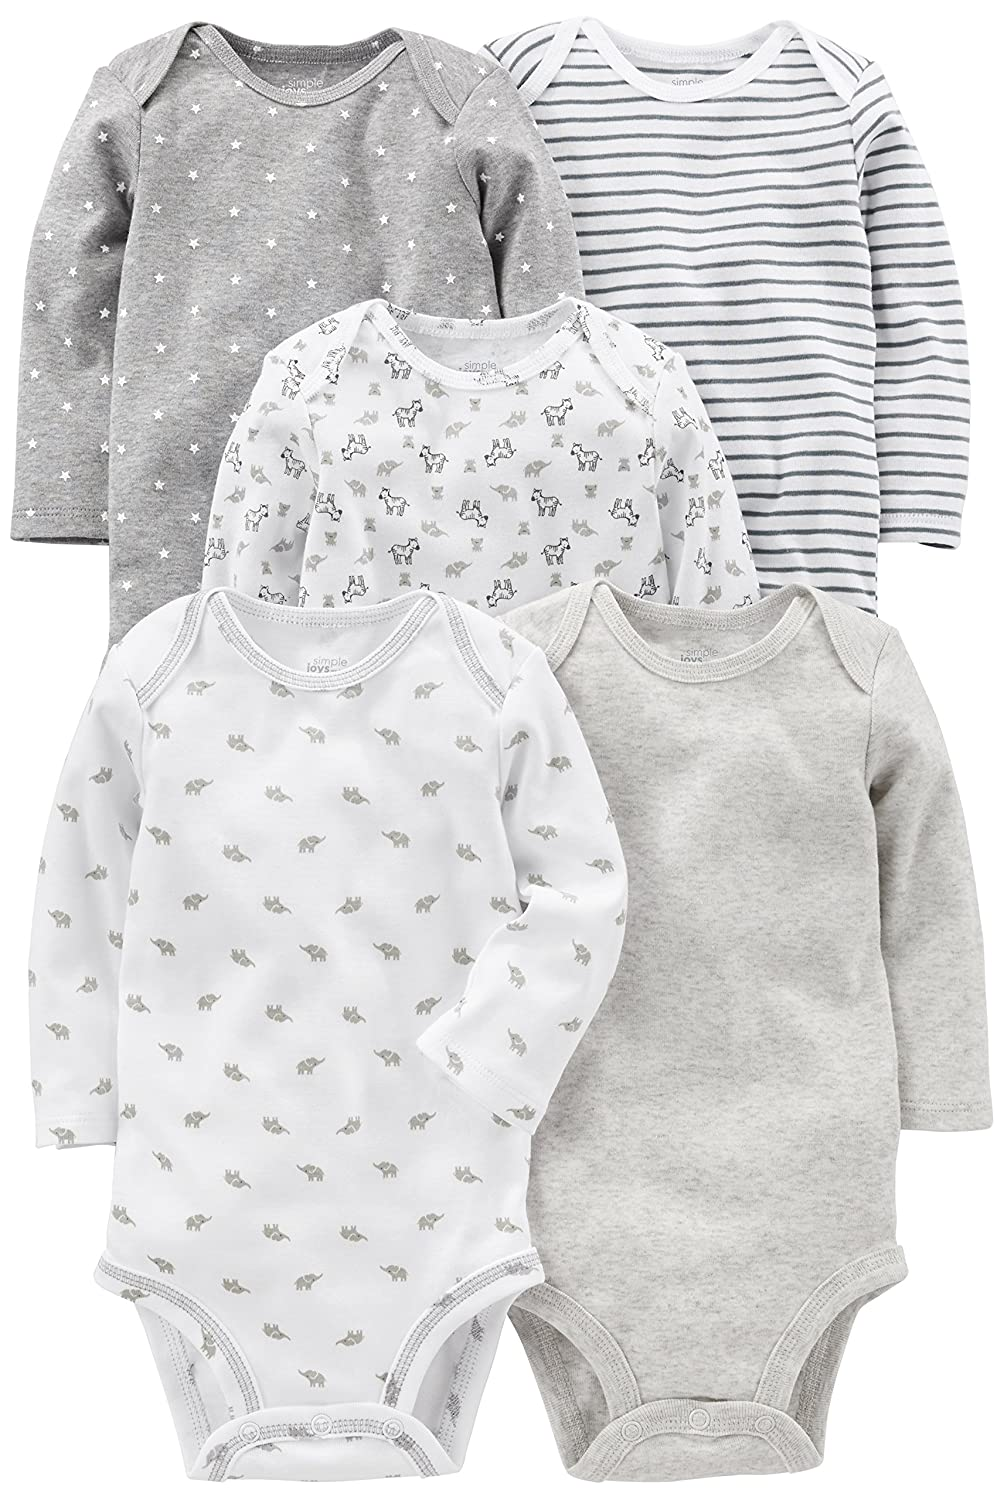 Simple Joys by Carter's Baby 5-Pack Long-Sleeve Bodysuit Simple Joys by Carter' s